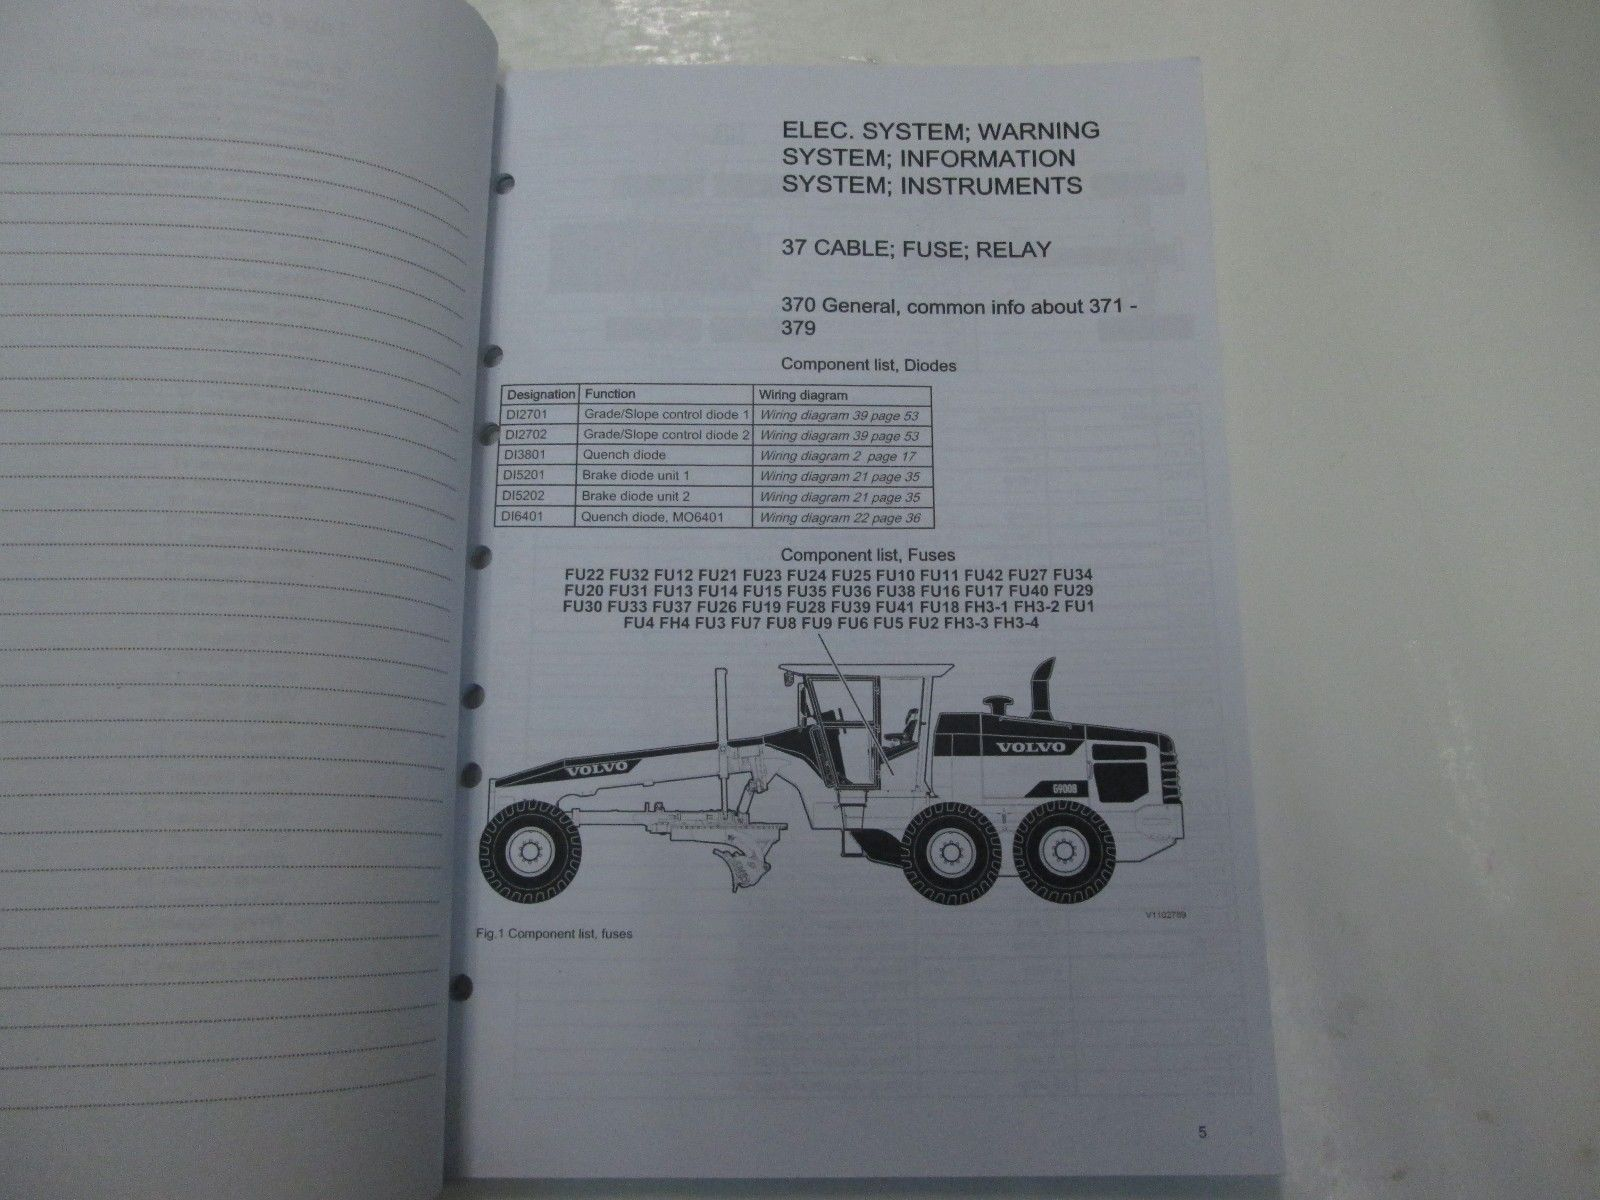 Construction Equipment Volvo Wiring Diagrams Free Download 240 Diagram For Alternator G940 Automotive Including Along With 2015 G903 C G946 G960